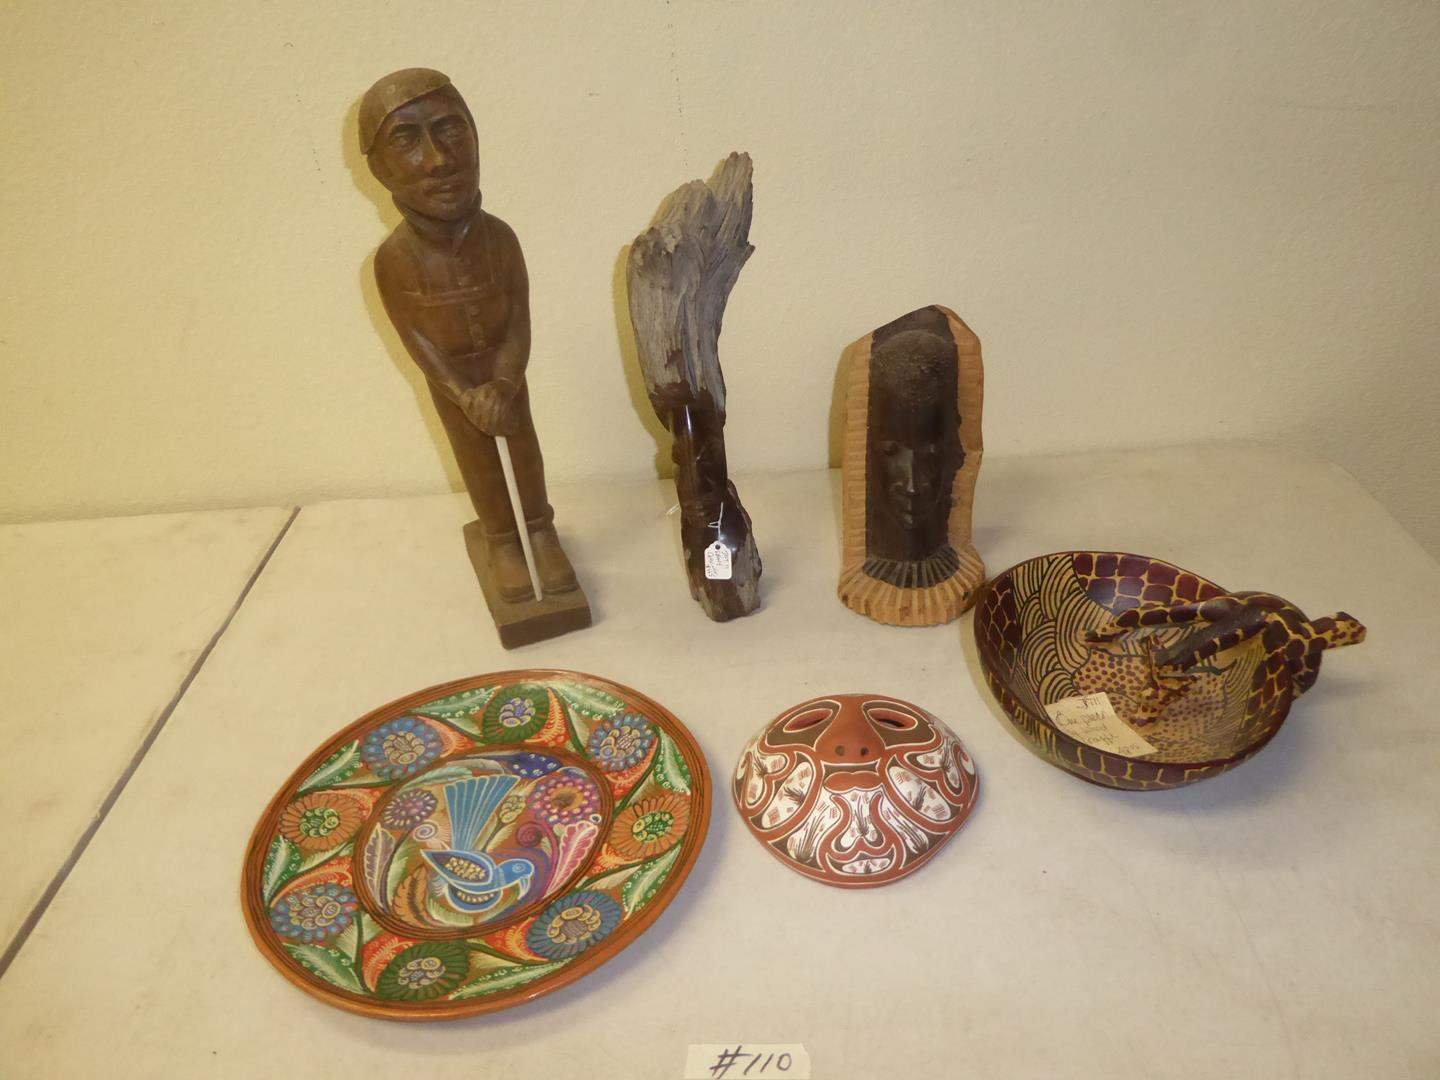 Lot # 110 - Man & Baby Wooden Sculpture, African Carving, Wood Giraffe Bowl, Painted Mexican Plate & Decorative Mask (main image)